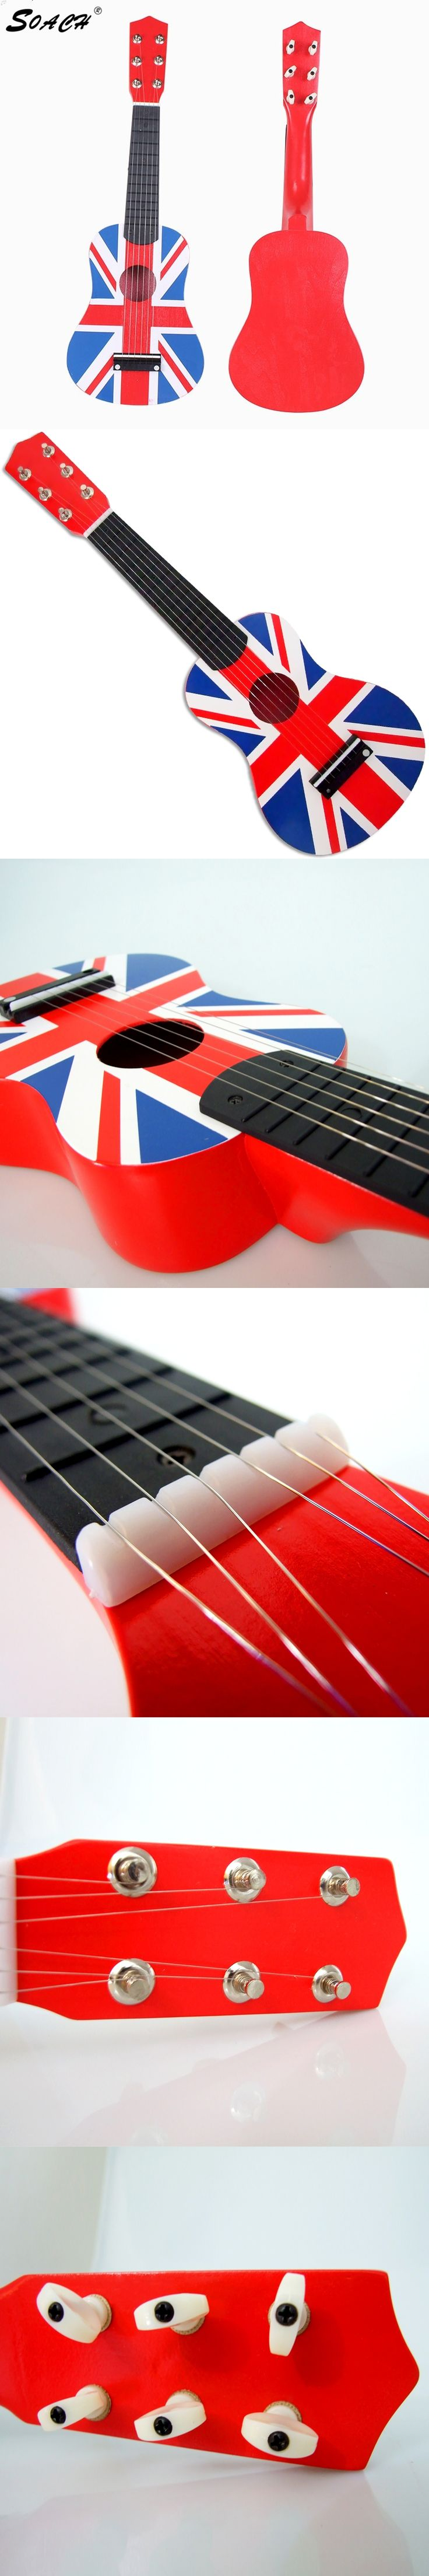 "SOACH High quality Guitarra Red British flag Flag Professional 21"" Acoustic Music 6 Steel String"